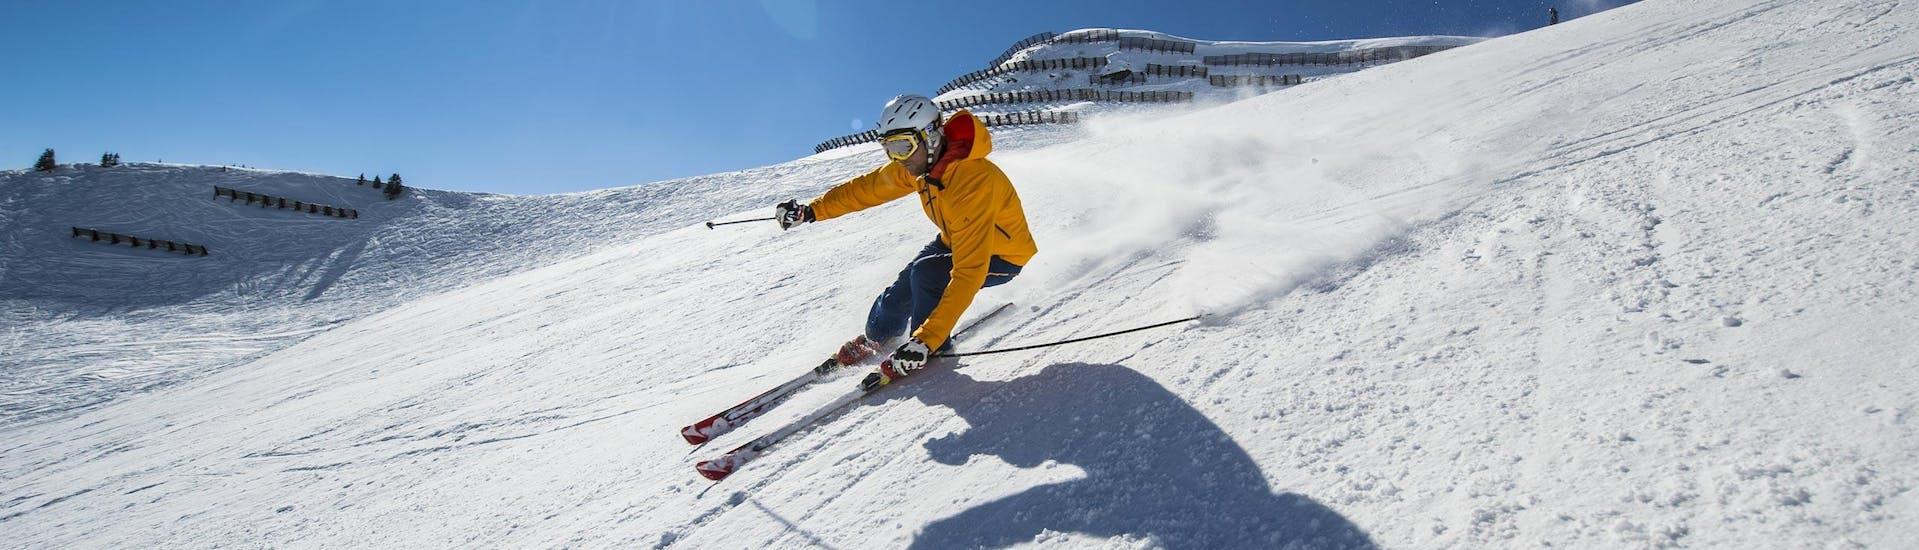 Private Mogul Technique Lessons for All Levels: A skier is skiing down a sunny ski slope while participating in an activity offered by Active Snow Team Engelberg.